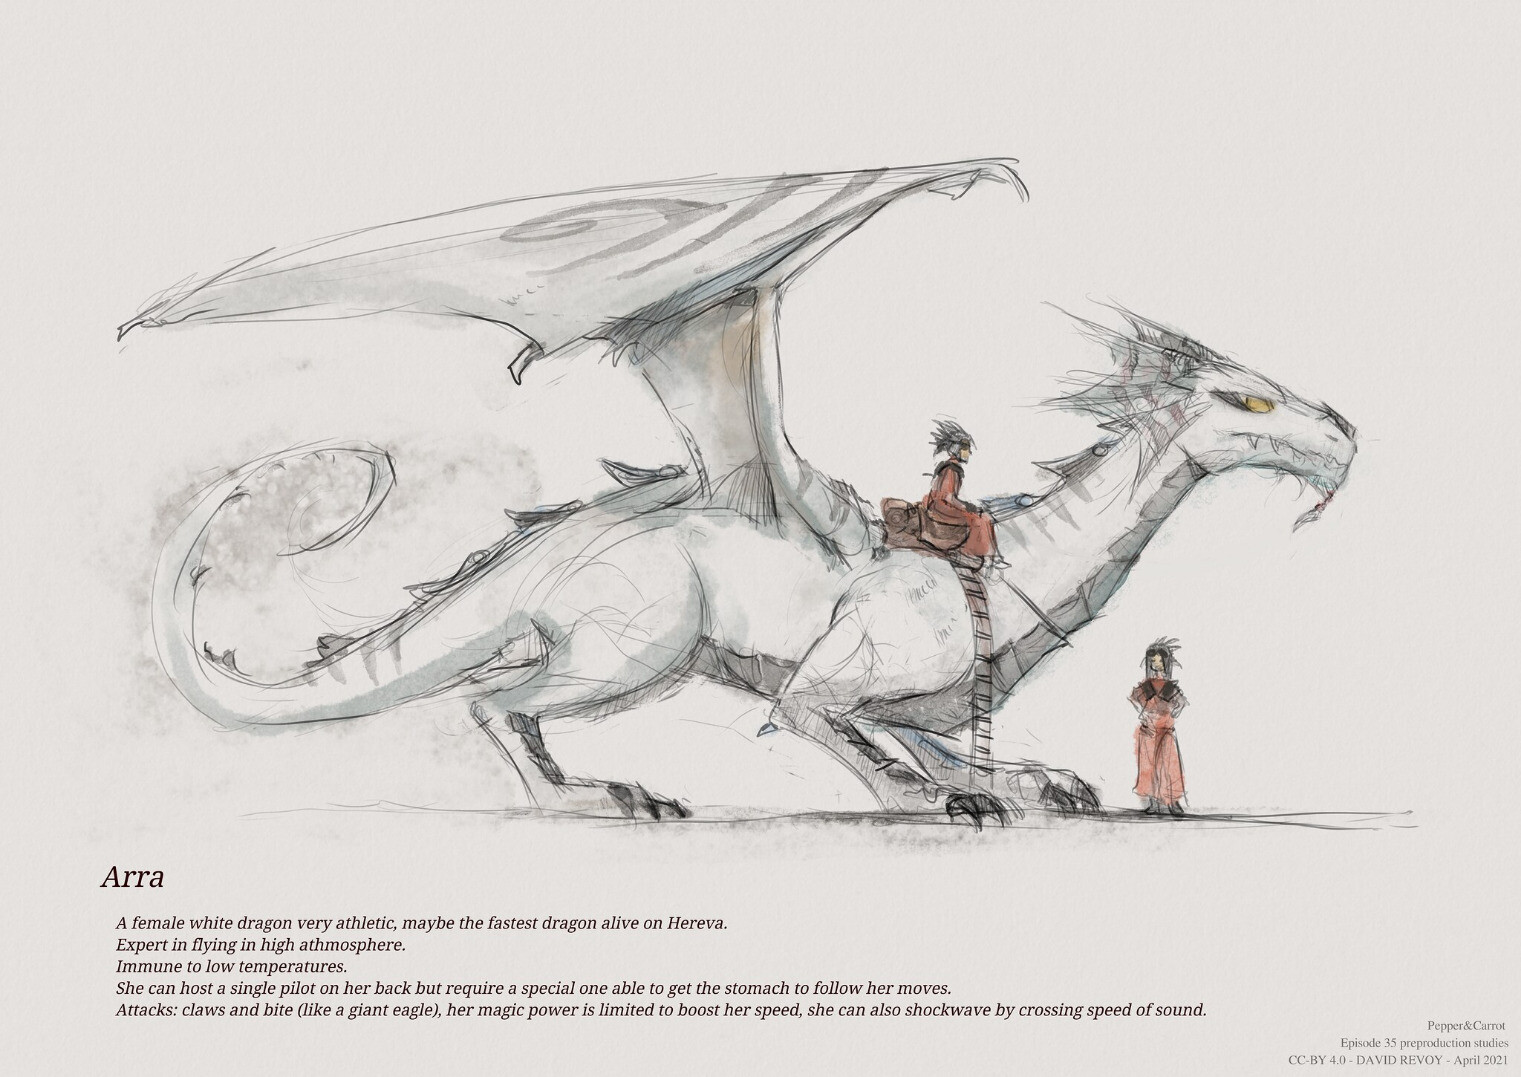 A model-sheet of Arra the dragon: <br /><br />Description on the picture: Arra, a female white dragon very athletic, maybe the fastest dragon alive on Hereva.<br />Expert in flying in high athmosphere. <br />Immune to low temperatures. <br />She can host a single pilot on her back but require a special one able to get the stomach to follow her moves.<br />Attacks: claws and bite (like a giant eagle), her magic power is limited to boost her speed, she can also shockwave by crossing speed of sound.